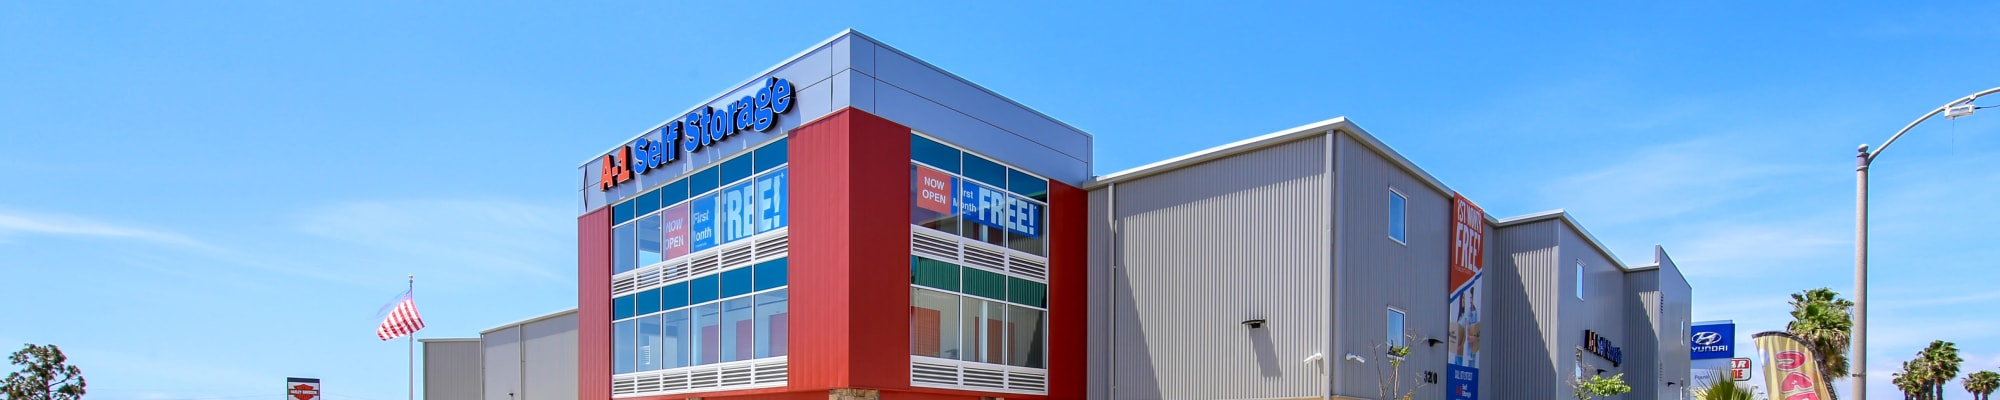 Student storage options at A-1 Self Storage in San Diego, California